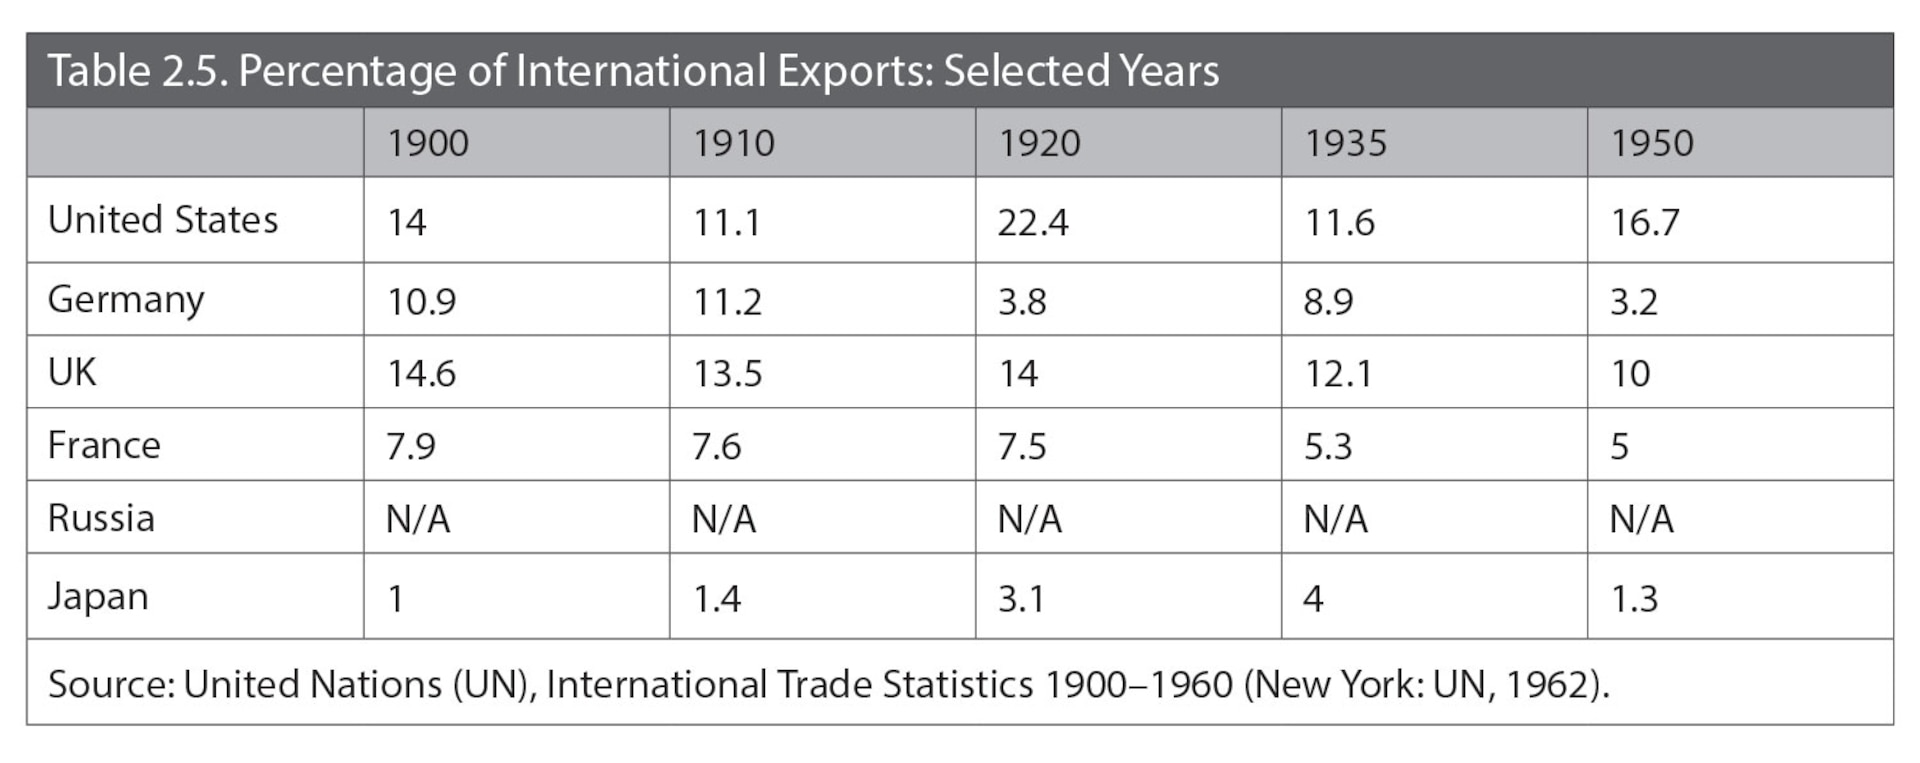 Table 2.5. Percentage of International Exports: Selected Years